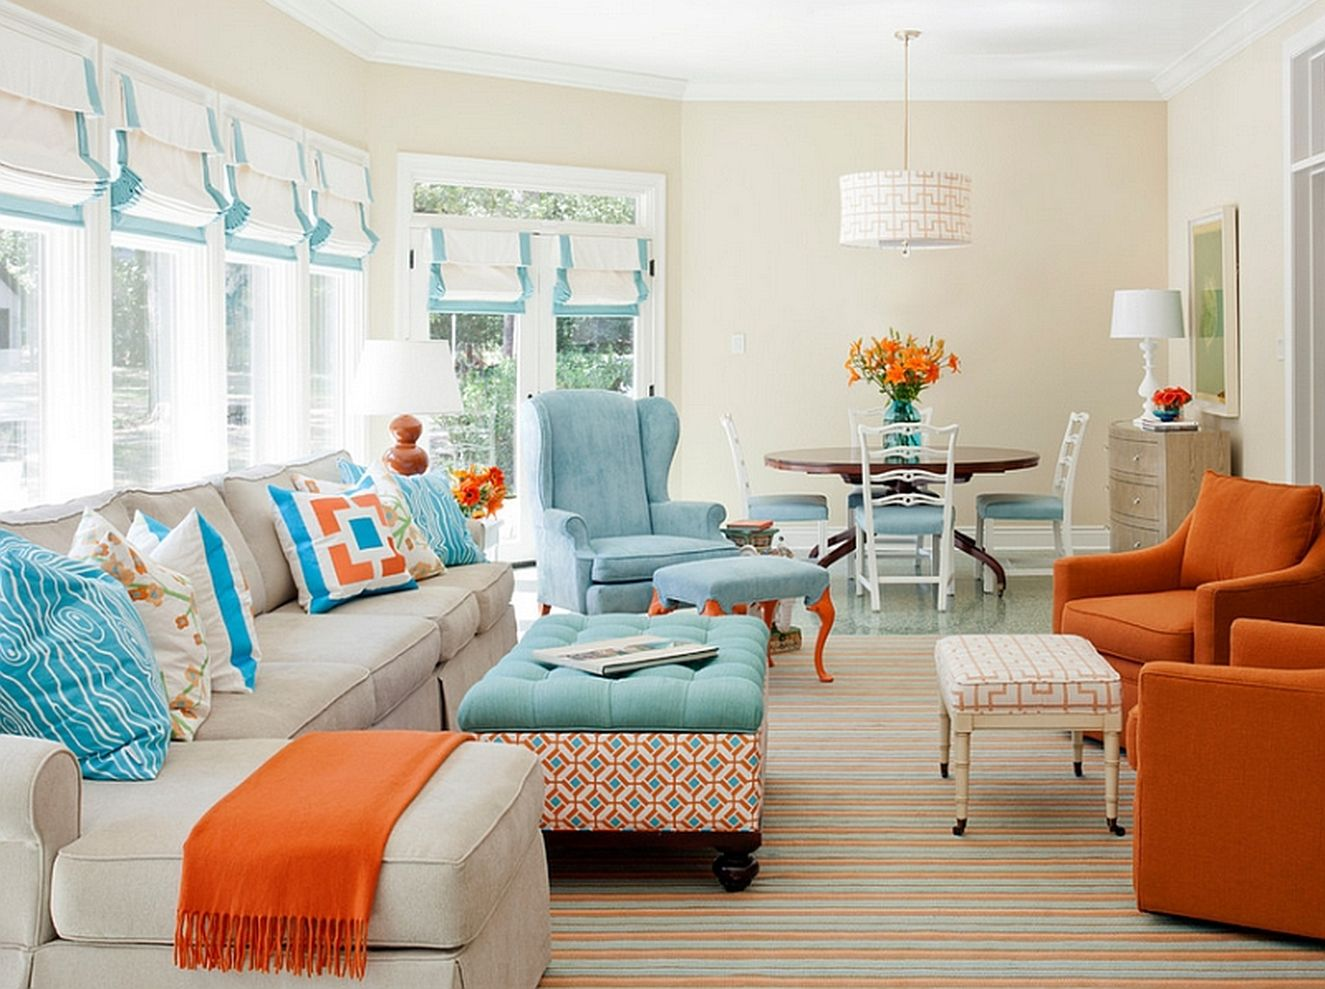 53 Adorable Burnt Orange And Teal Living Room Ideas - ROUNDECOR